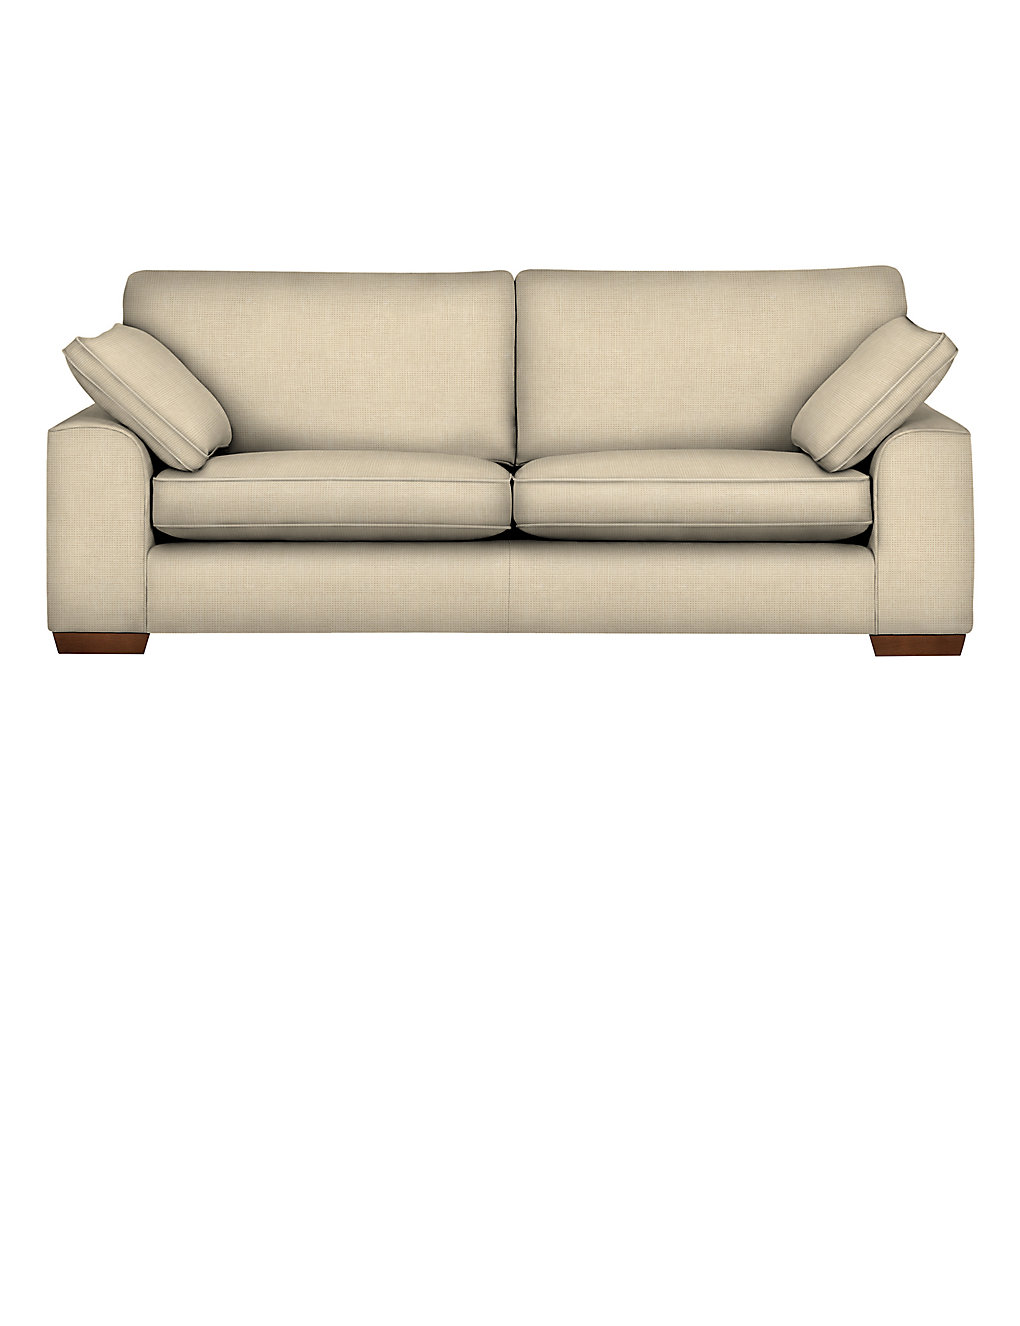 Two Seater Sofa Living Room 2 Seater Sofas Home Furniture Ms